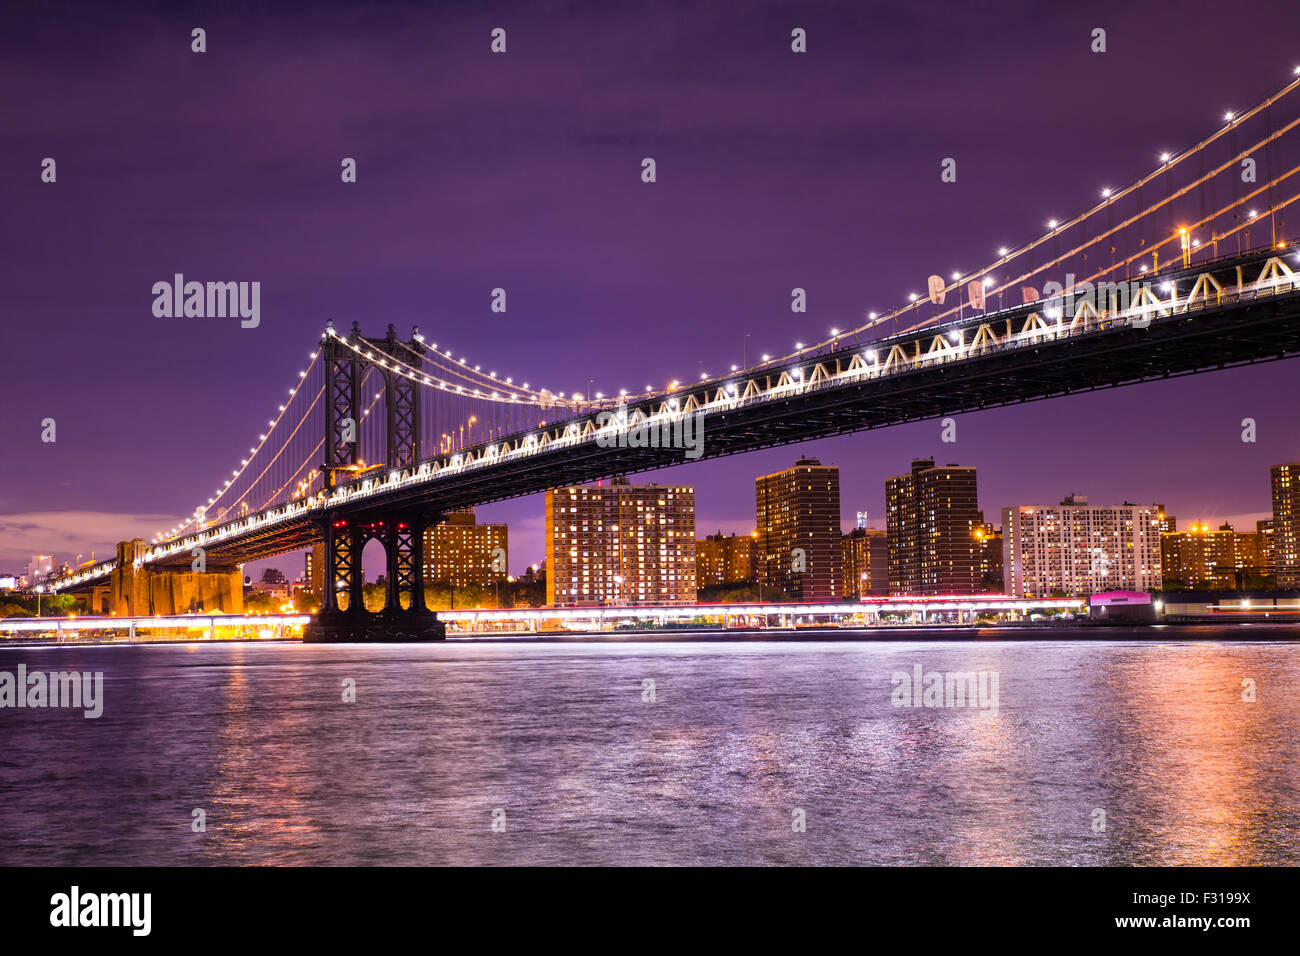 Night view of The Manhattan bridge in New York City - Stock Image